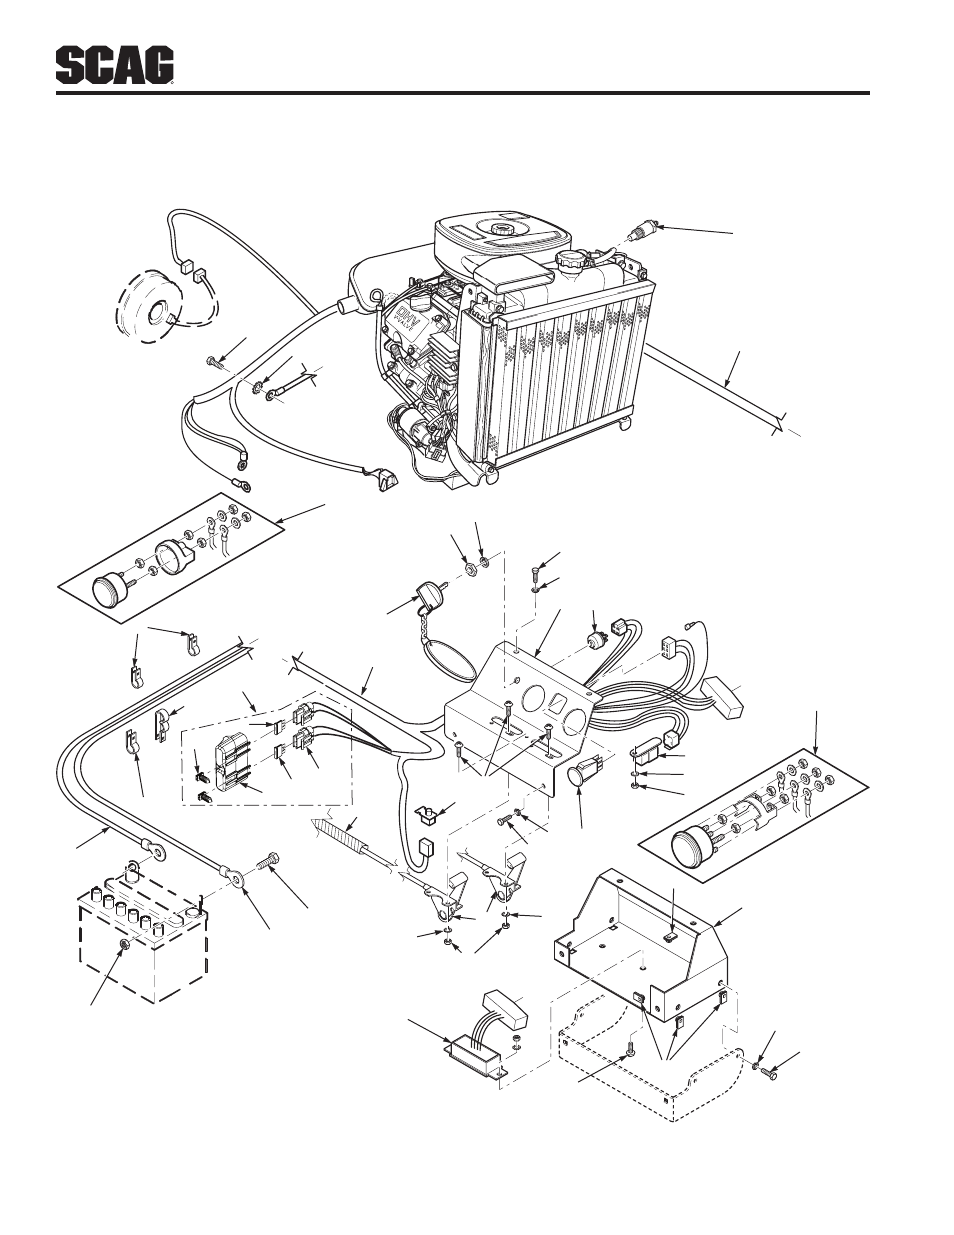 medium resolution of electrical system 27hp kawasaki scag power equipment turf tiger stt52v 27ch user manual page 81 138